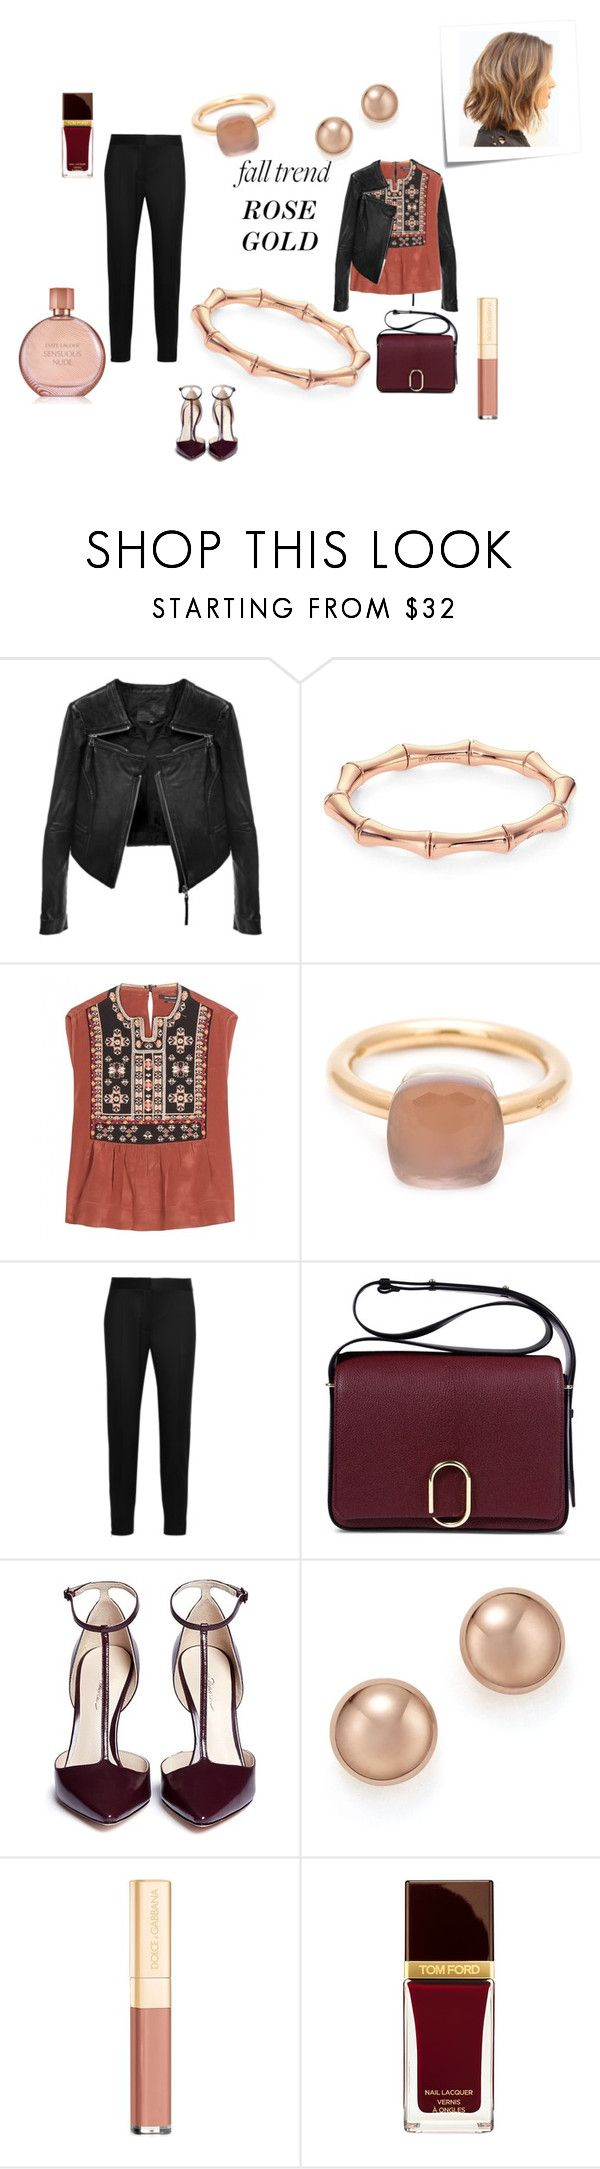 """""""Untitled #54"""" by lunkhead on Polyvore featuring Linea Pelle, Gucci, Isabel Marant, Pomellato, STELLA McCARTNEY, 3.1 Phillip Lim, Bloomingdale's, Dolce&Gabbana, Tom Ford and Estée Lauder"""